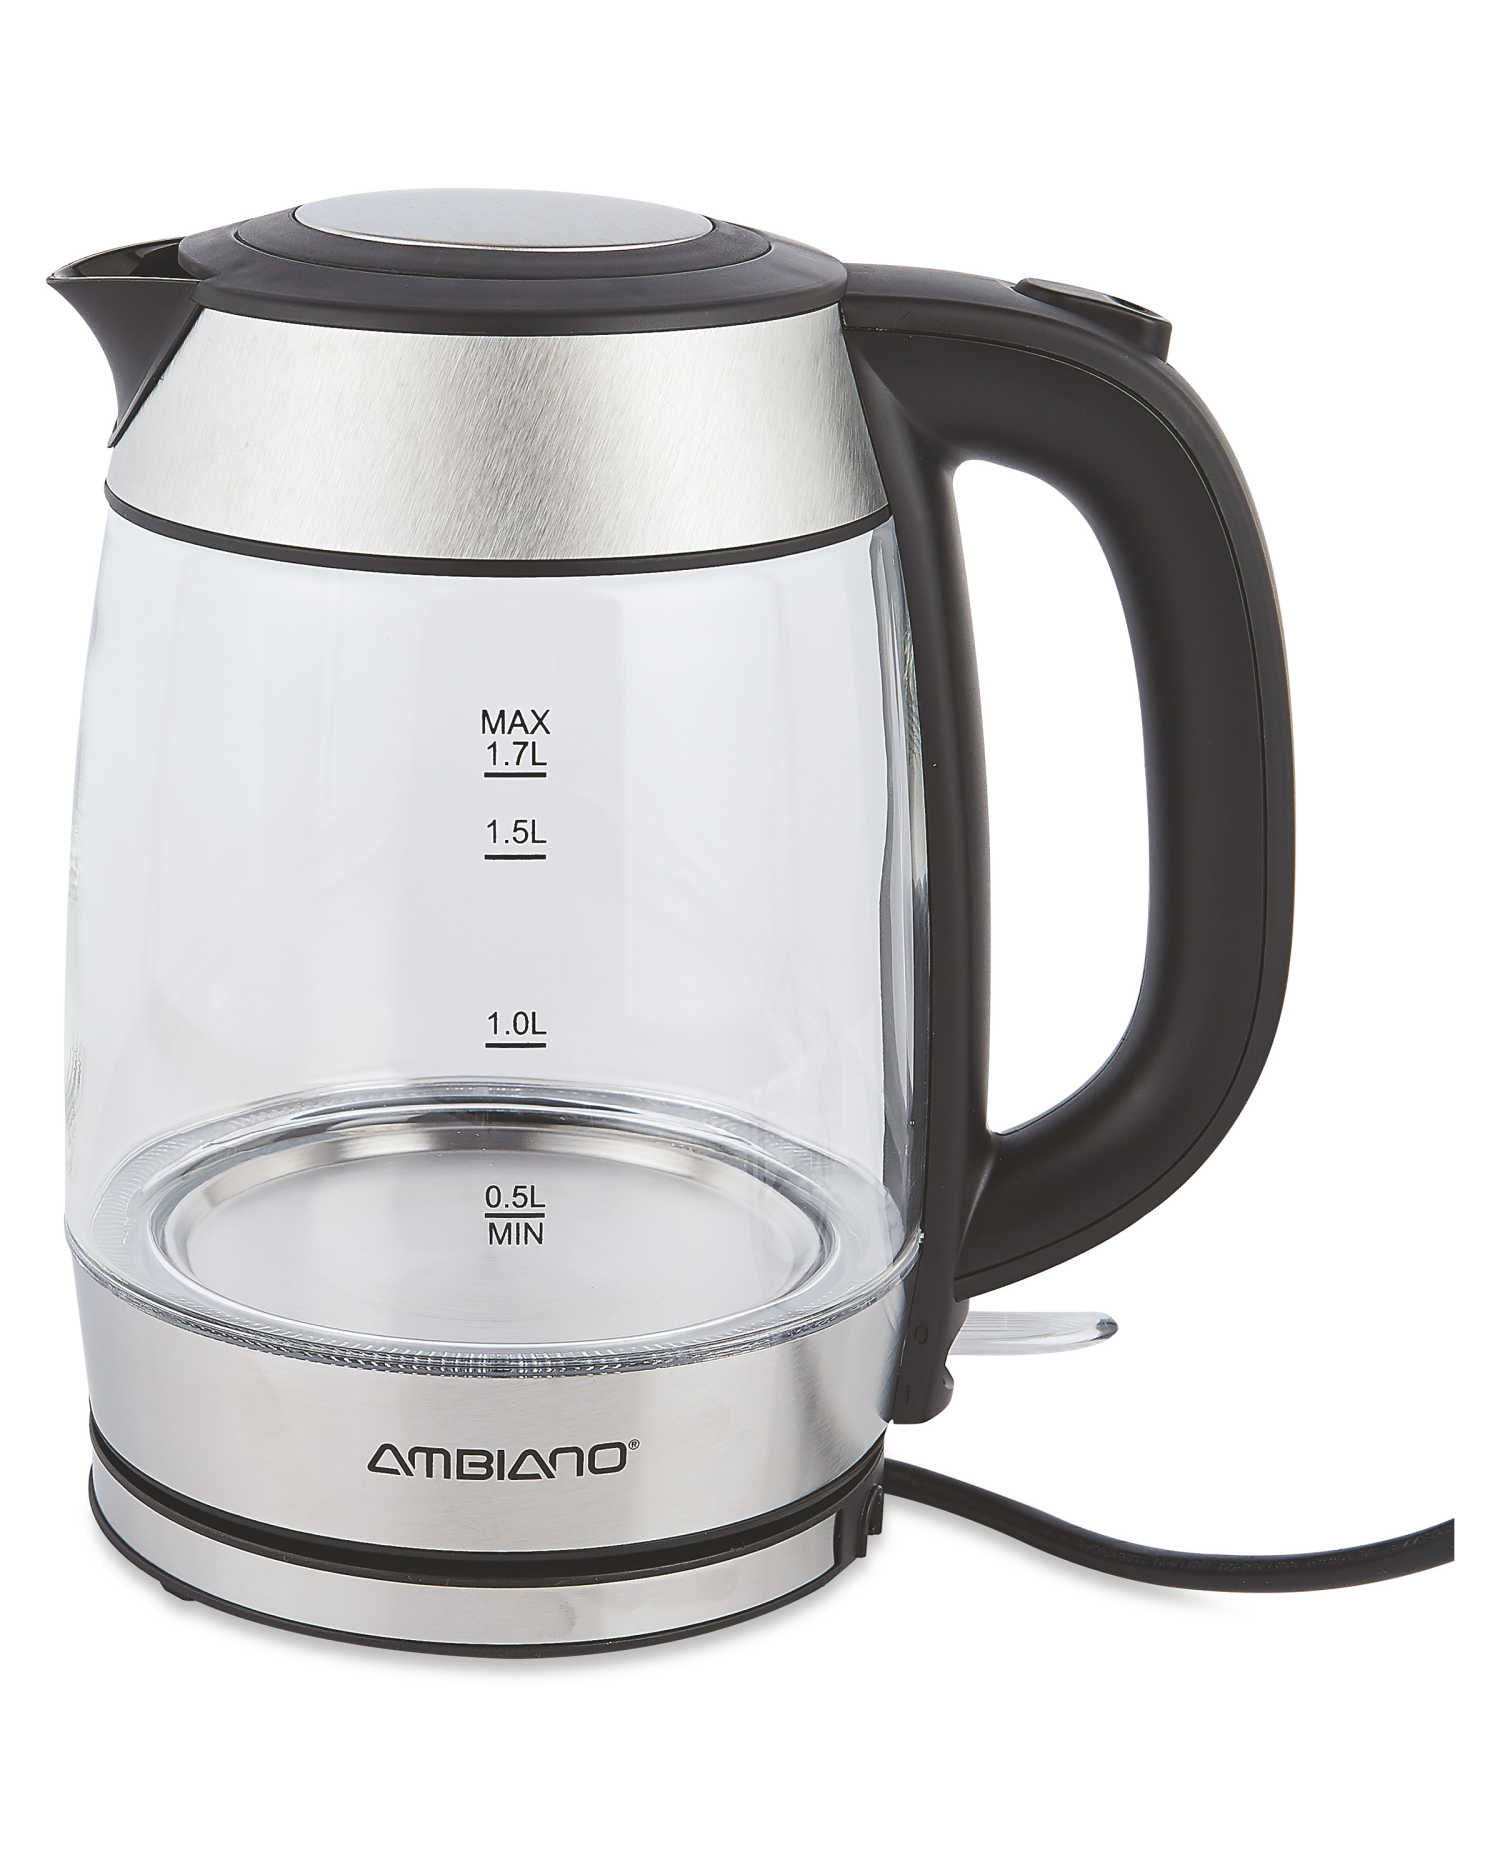 You could save yourself £5 by opting for this Ambiano kettle from Aldi